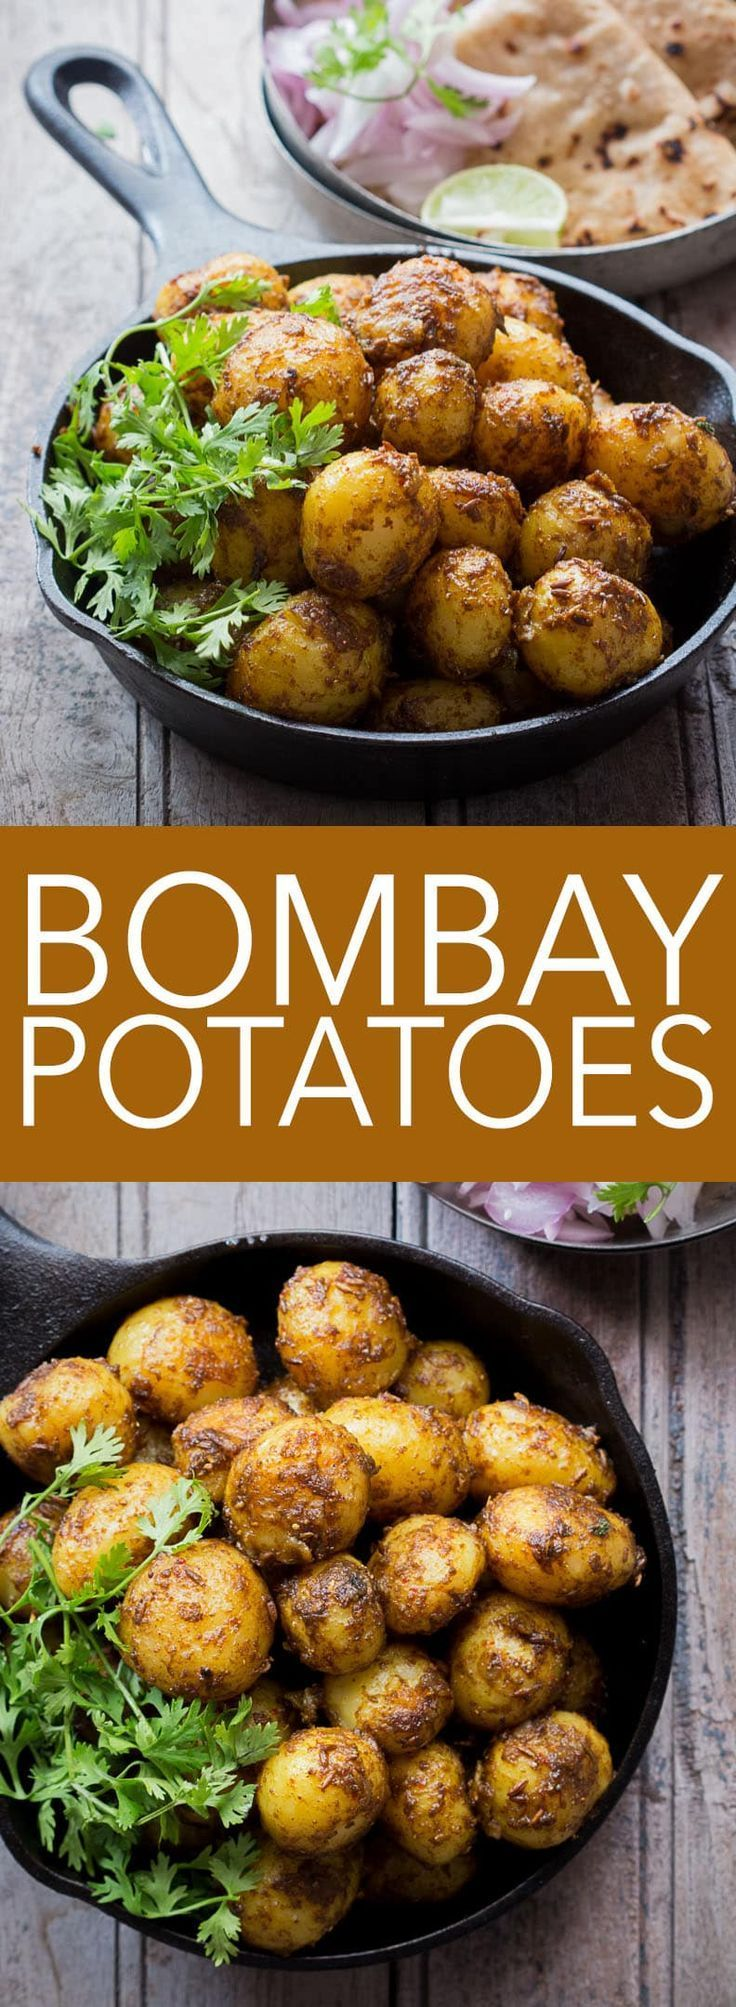 Need to make Indian in 20 minutes? Try these Bombay Potatoes or chatpate masala aloo! One pan, no fuss recipe! Coated with spices and super quick, they double up as appetizer and main course.: